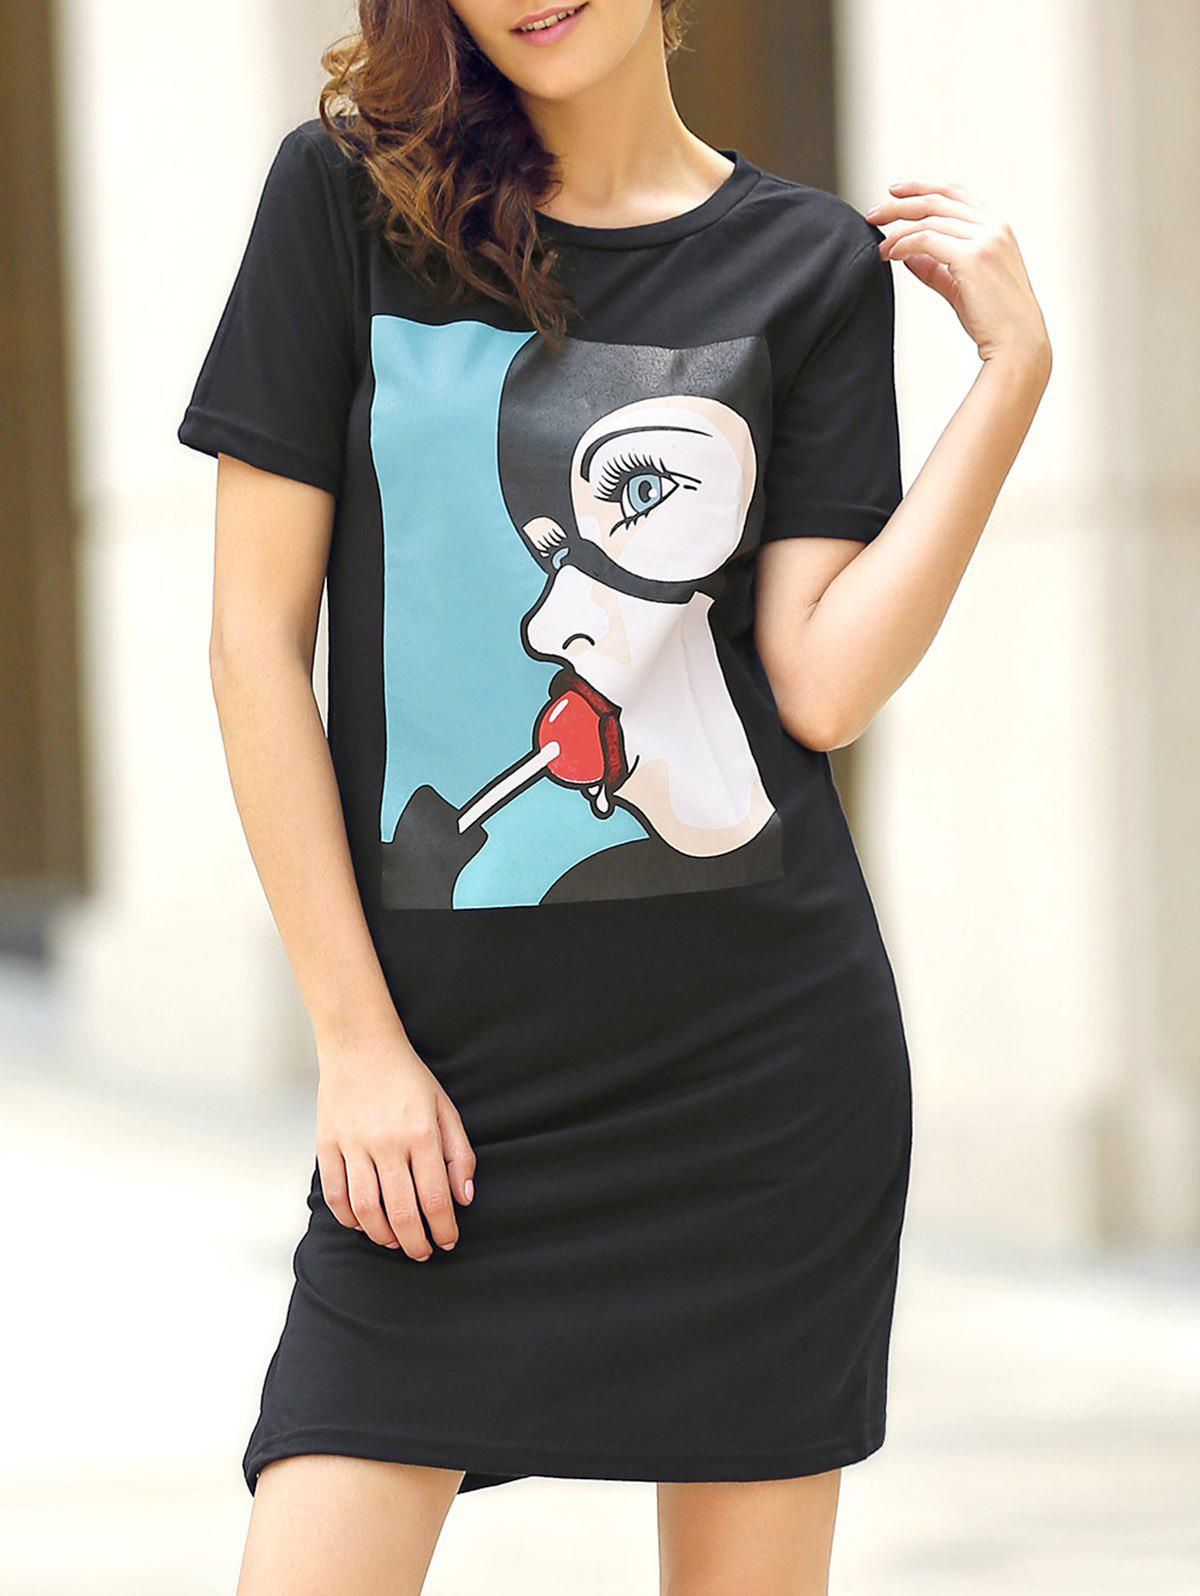 Casual Women's Round Collar Cartoon Print Short Sleeve Dress - BLACK L